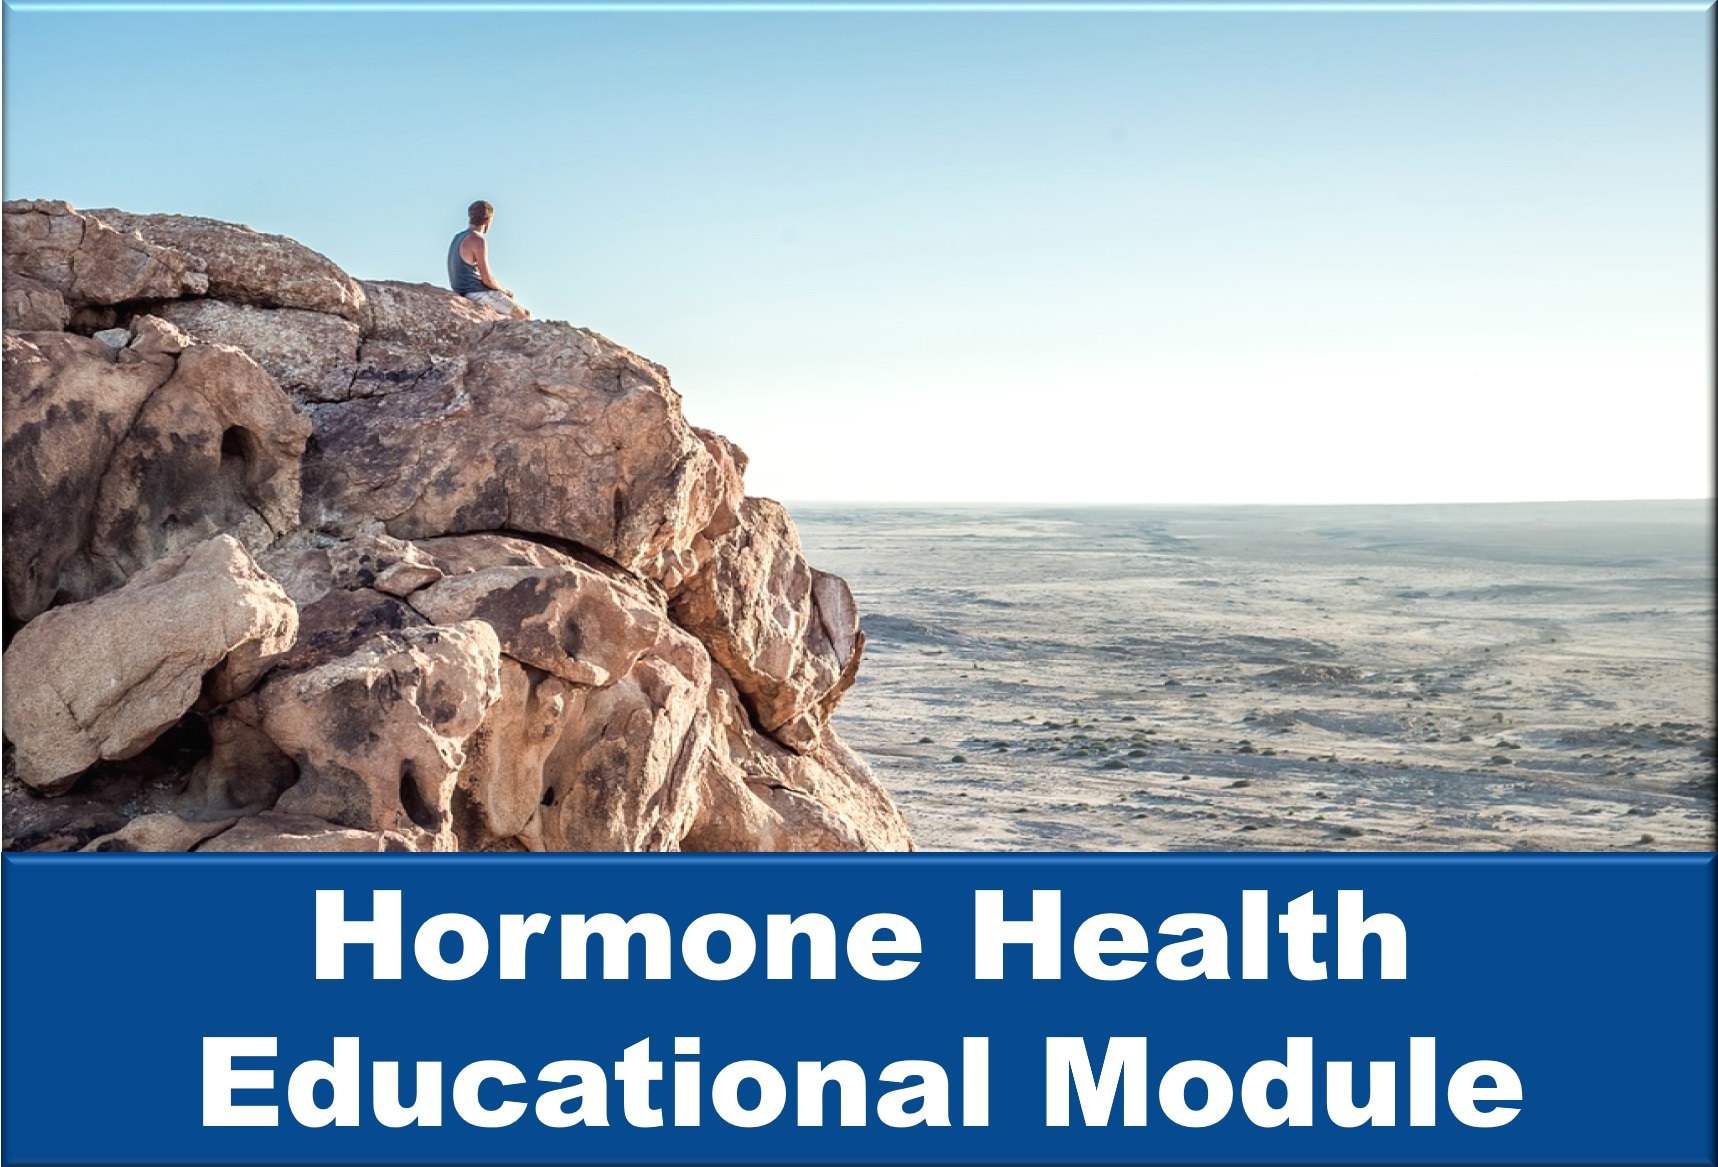 Hormone Health Educational Module